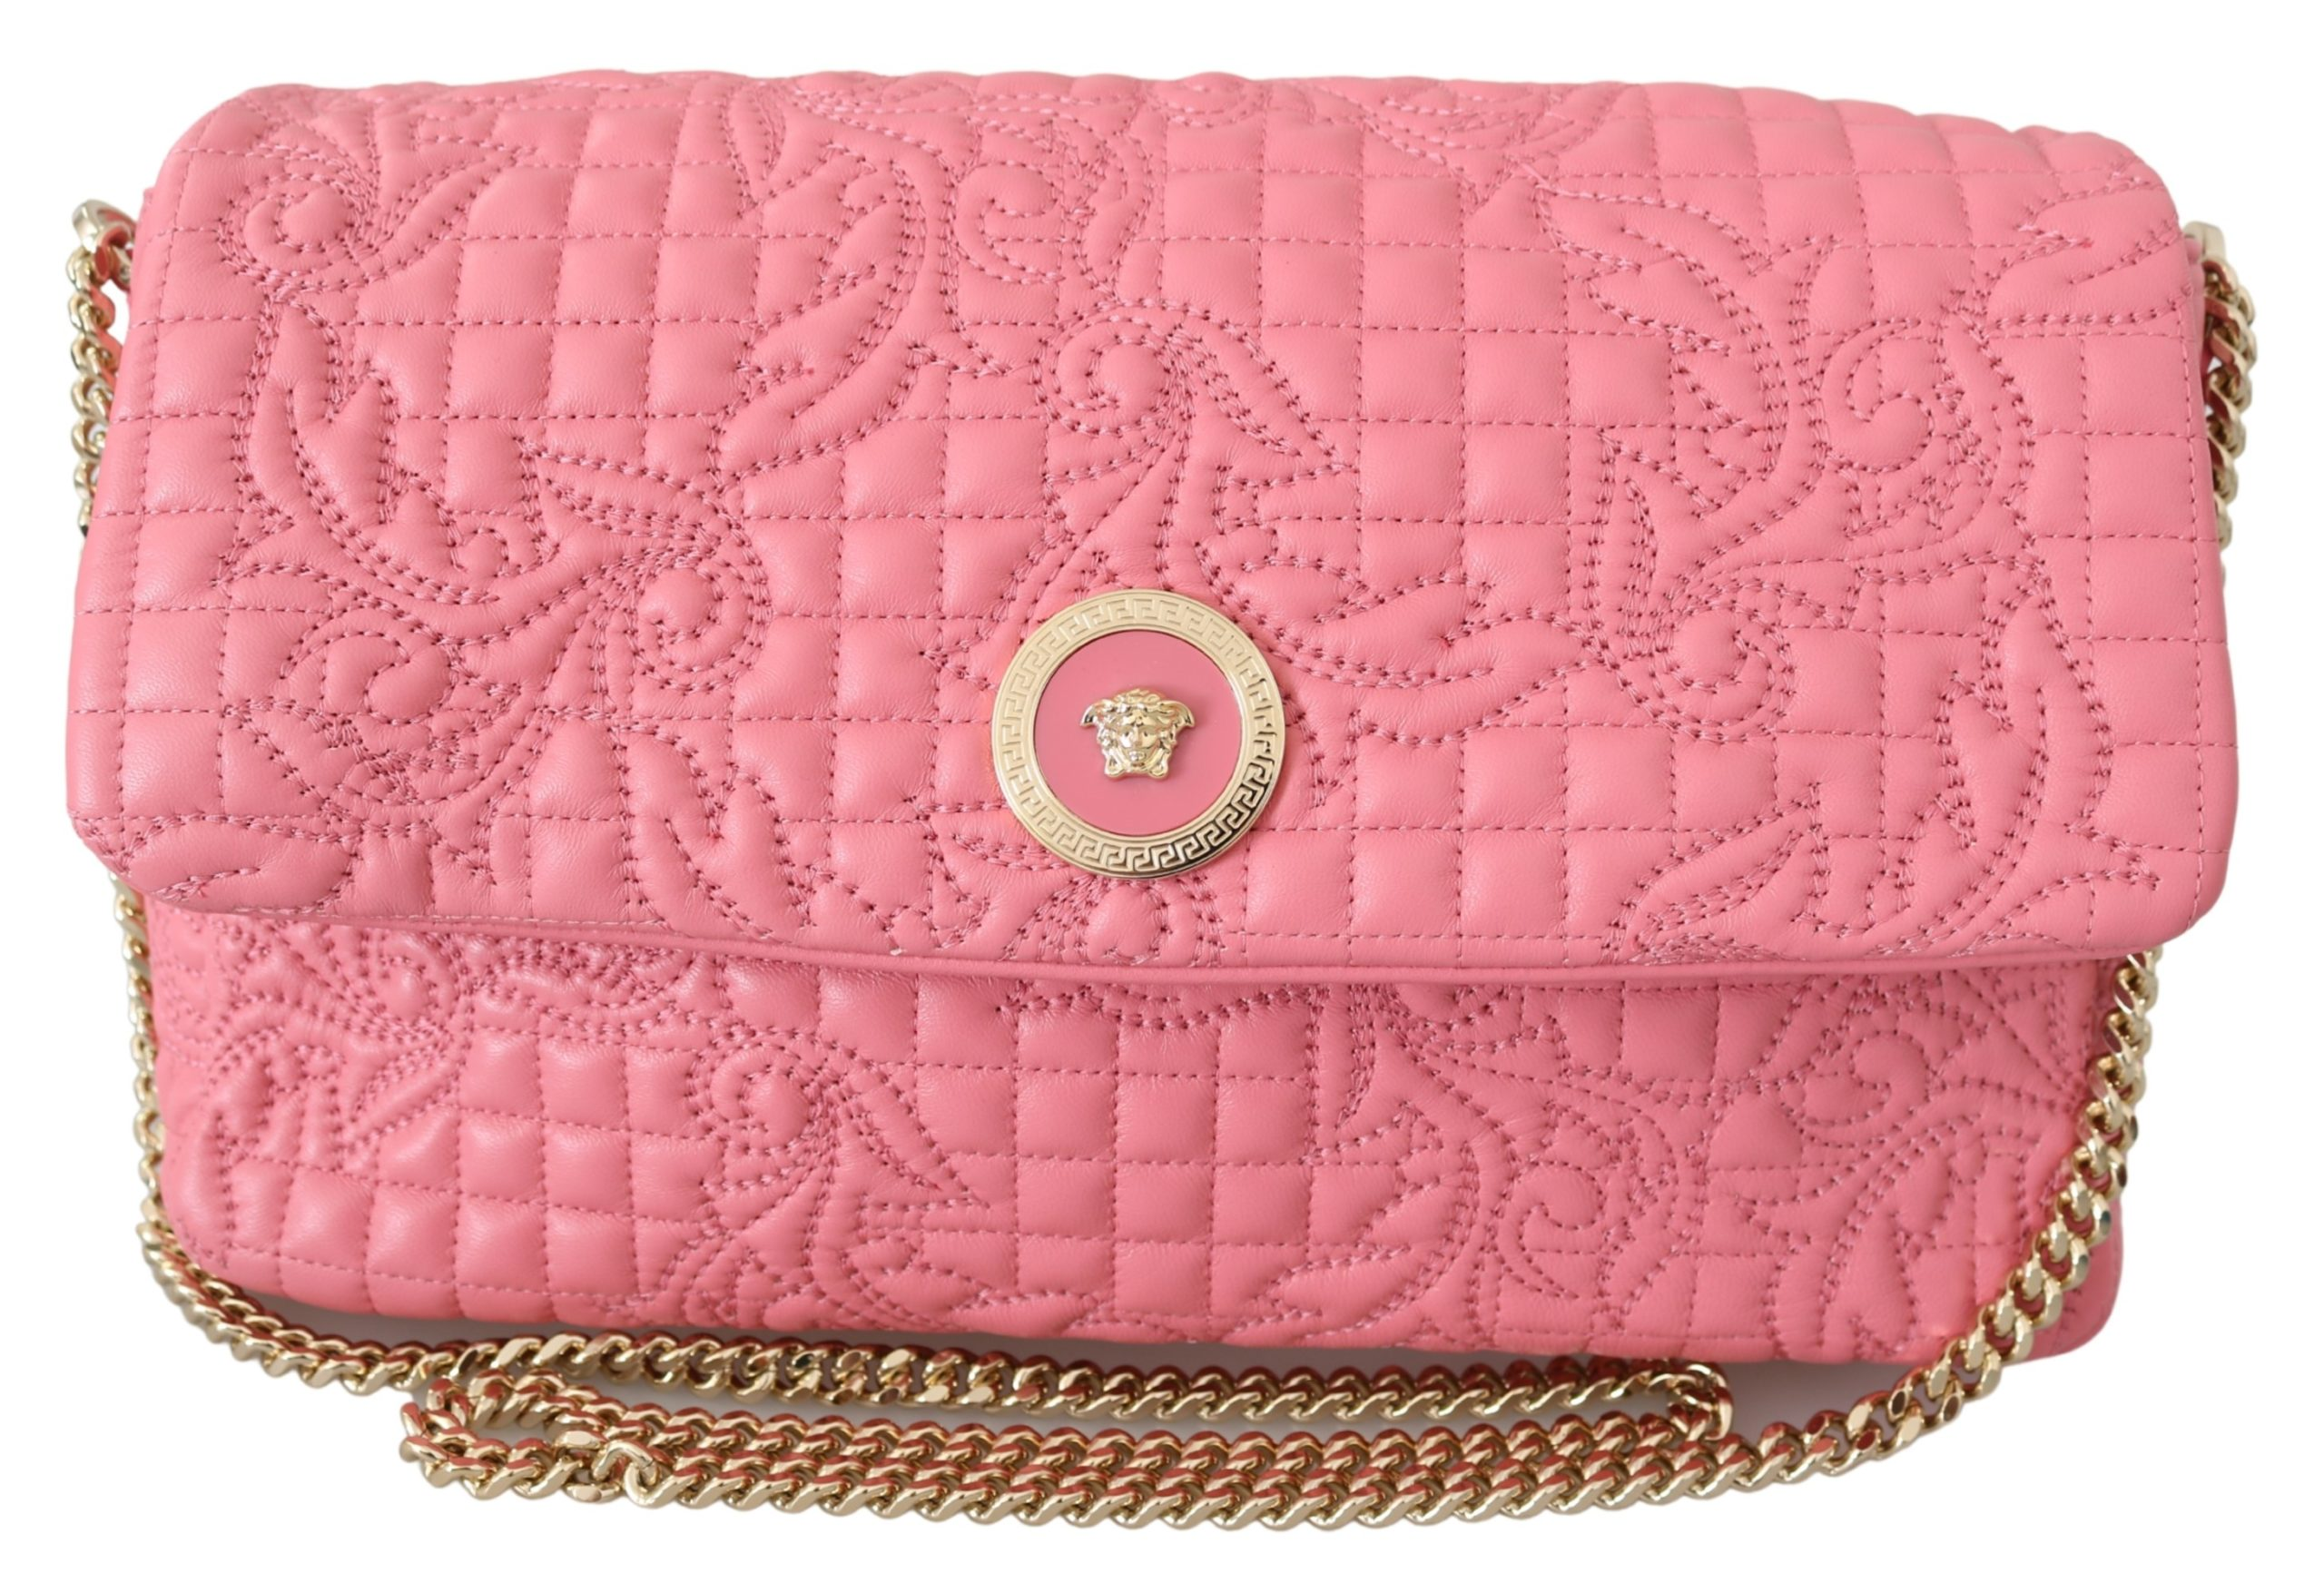 Versace Women's Quilted Nappa Leather Handbag Pink 8053850413966